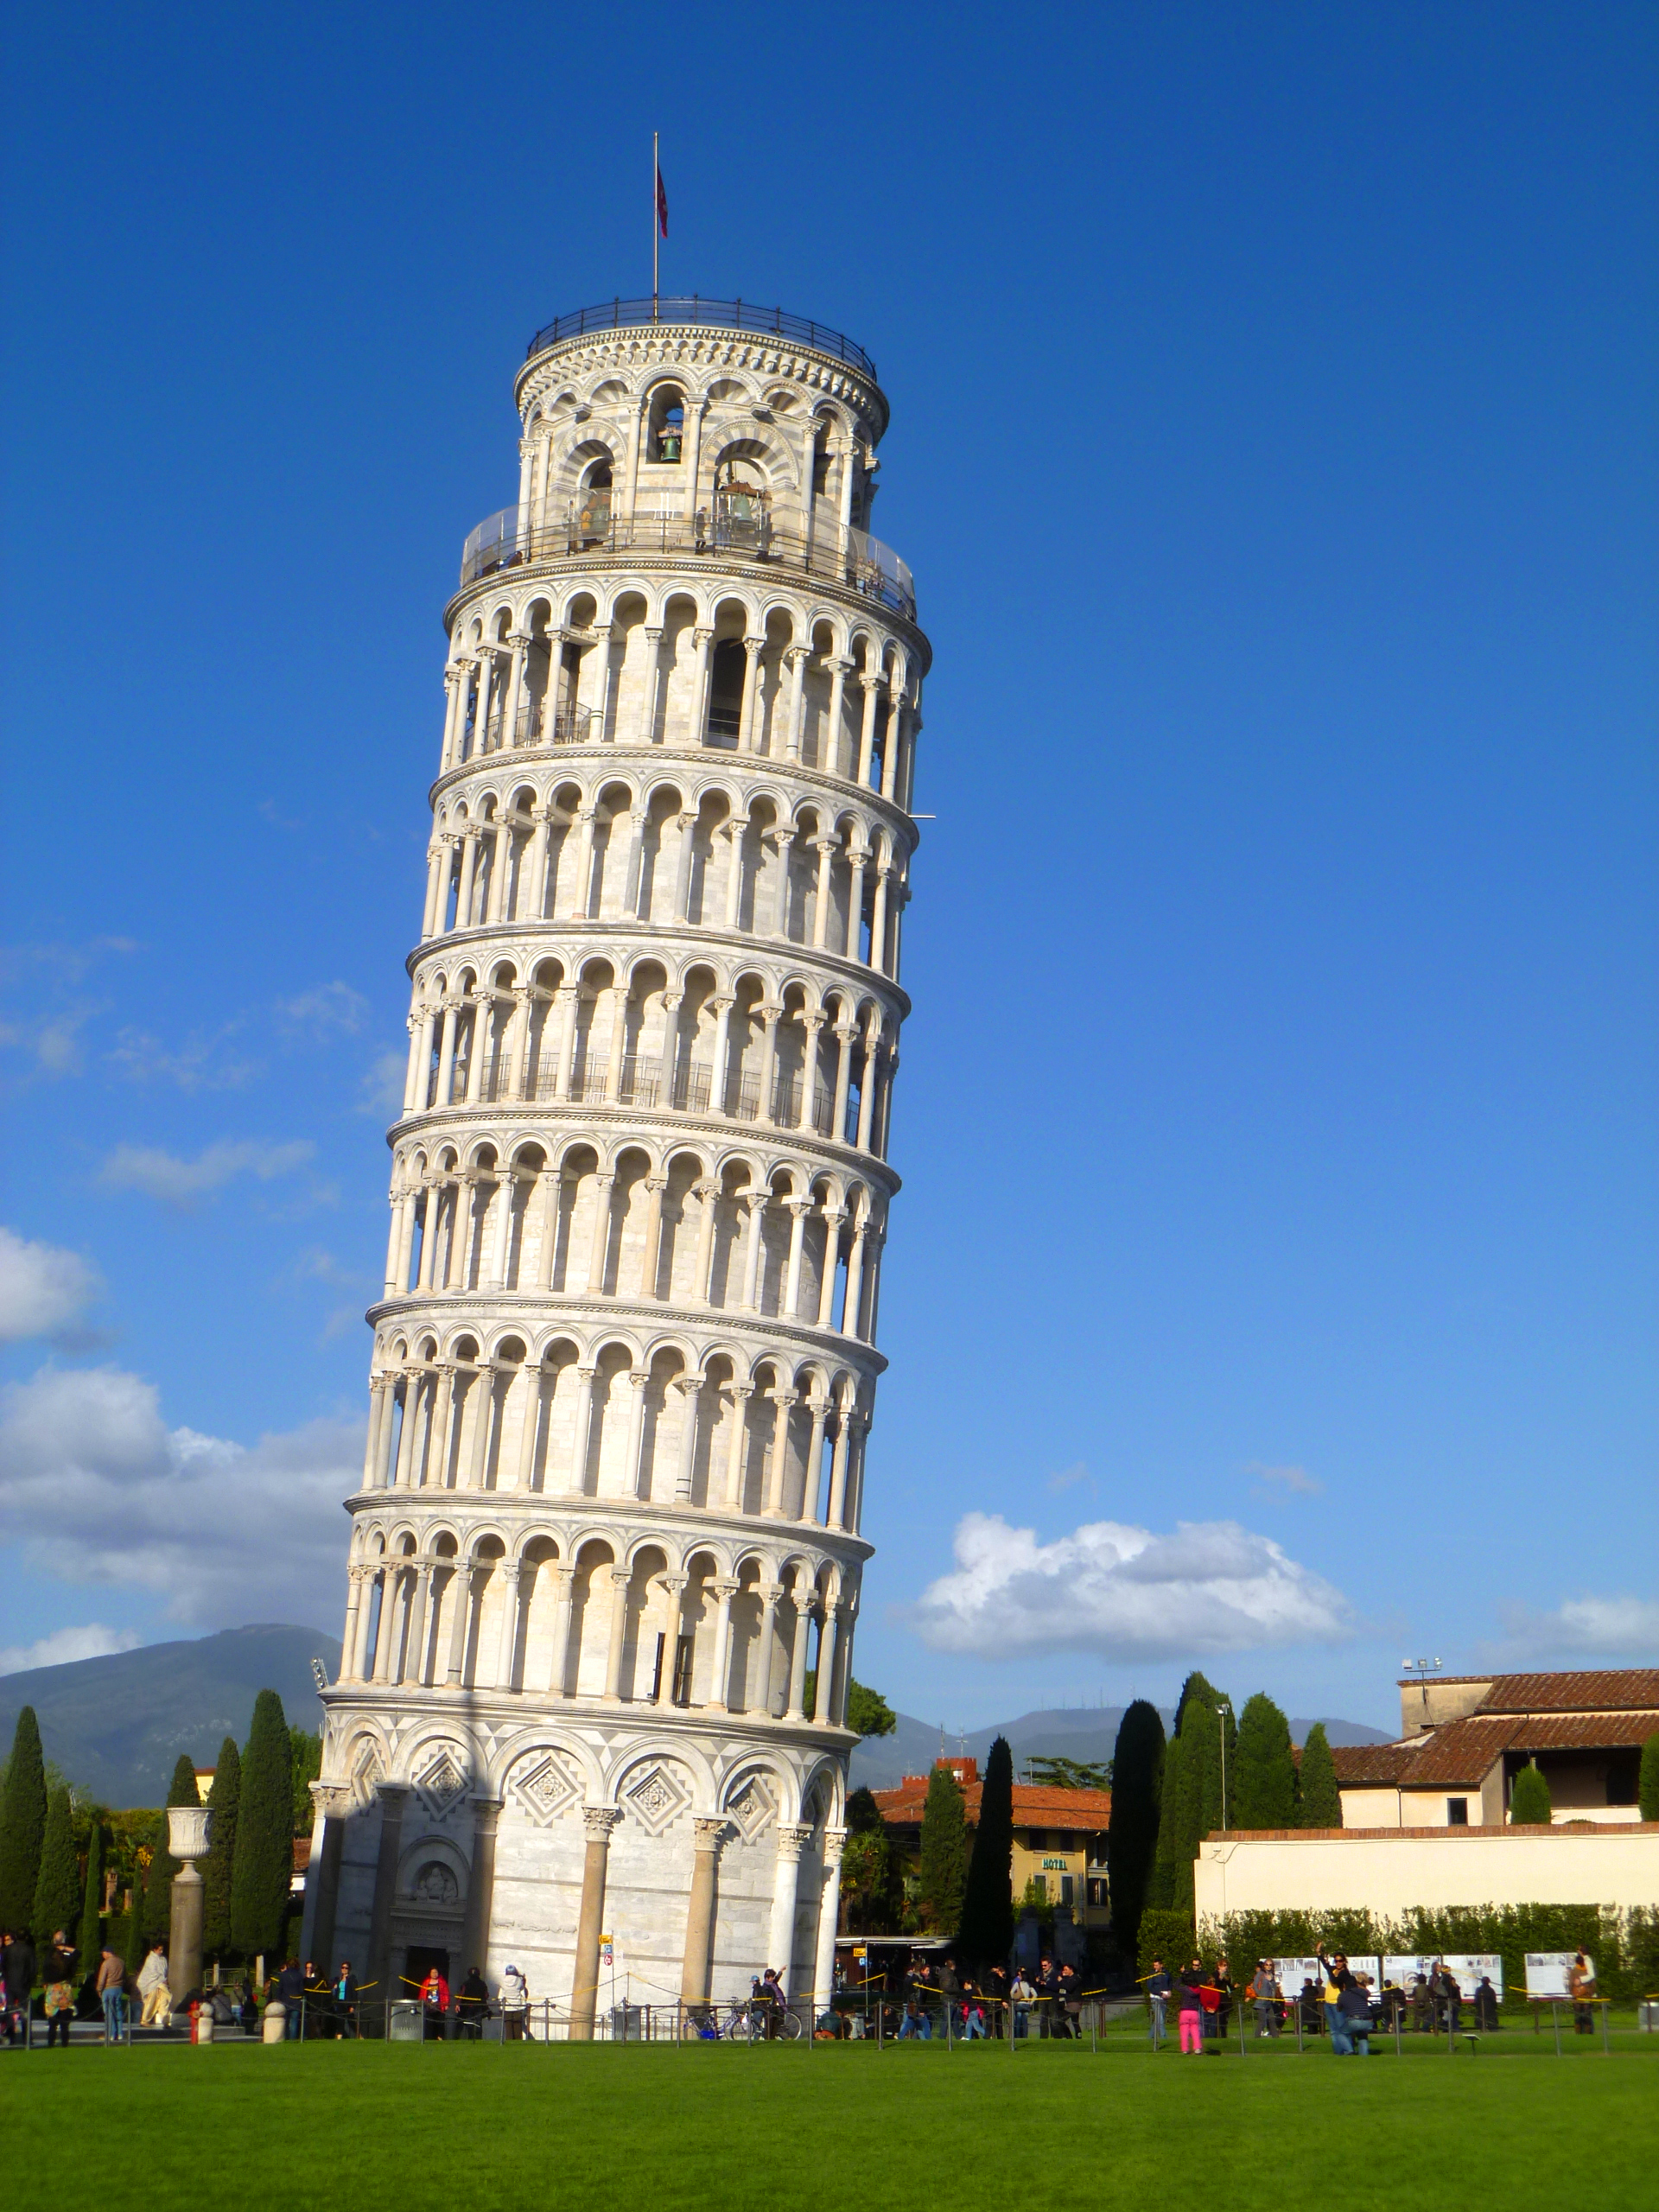 Leaning Tower Pisa, leaning tower of pisa italy - VISIT ALL OVER THE WORLD